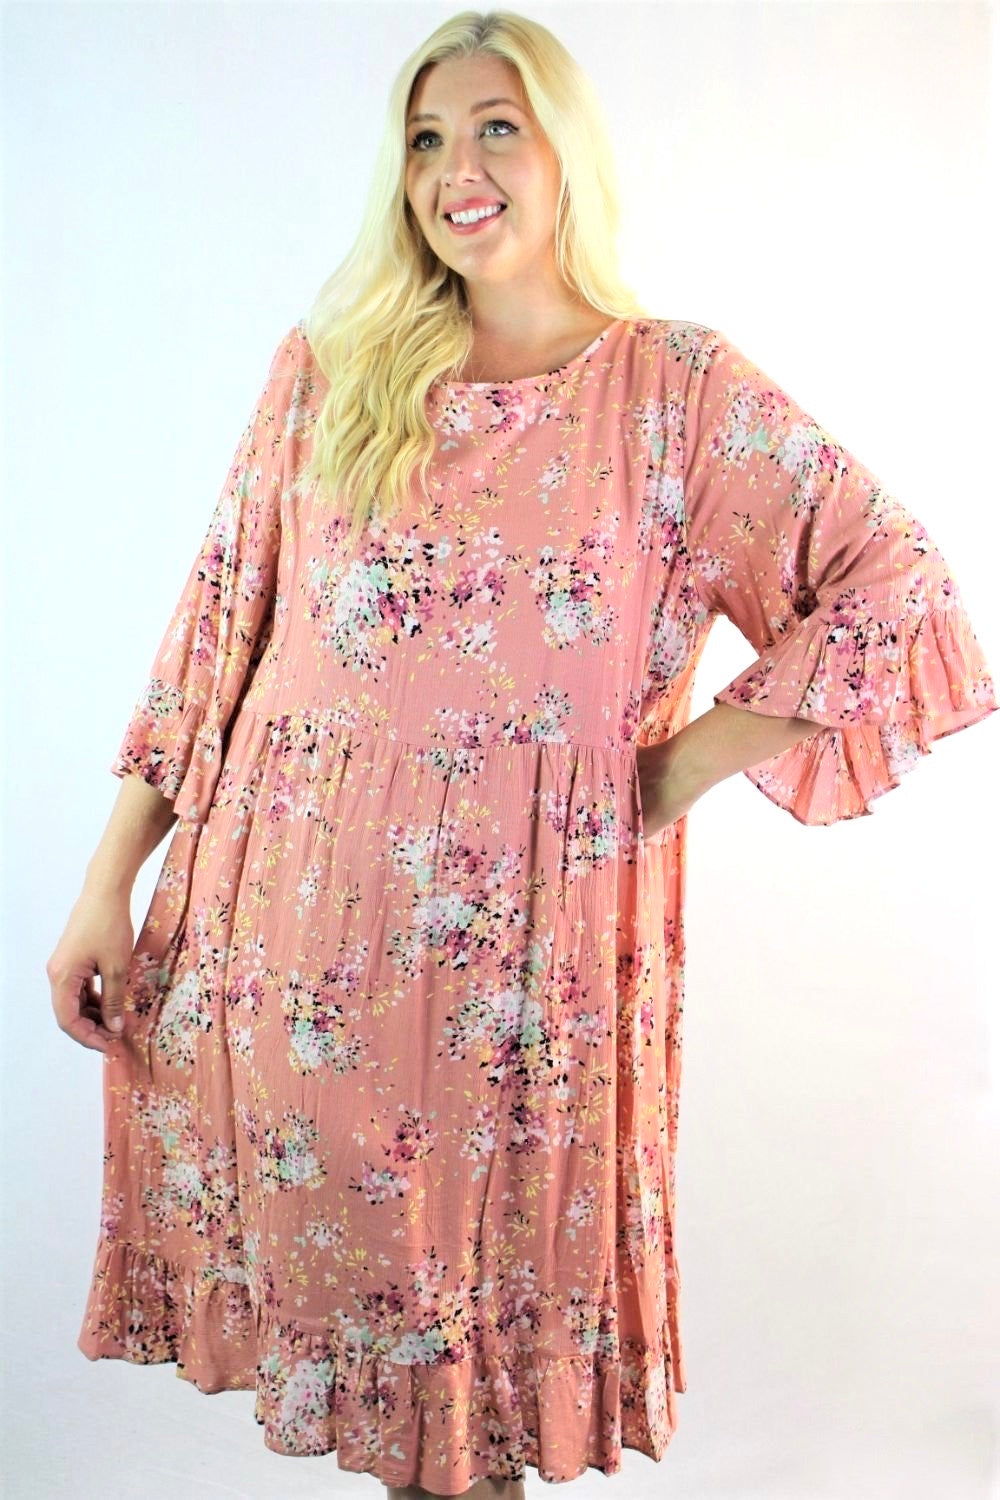 Women's Plus Size Floral Dress with Ruffled Hem